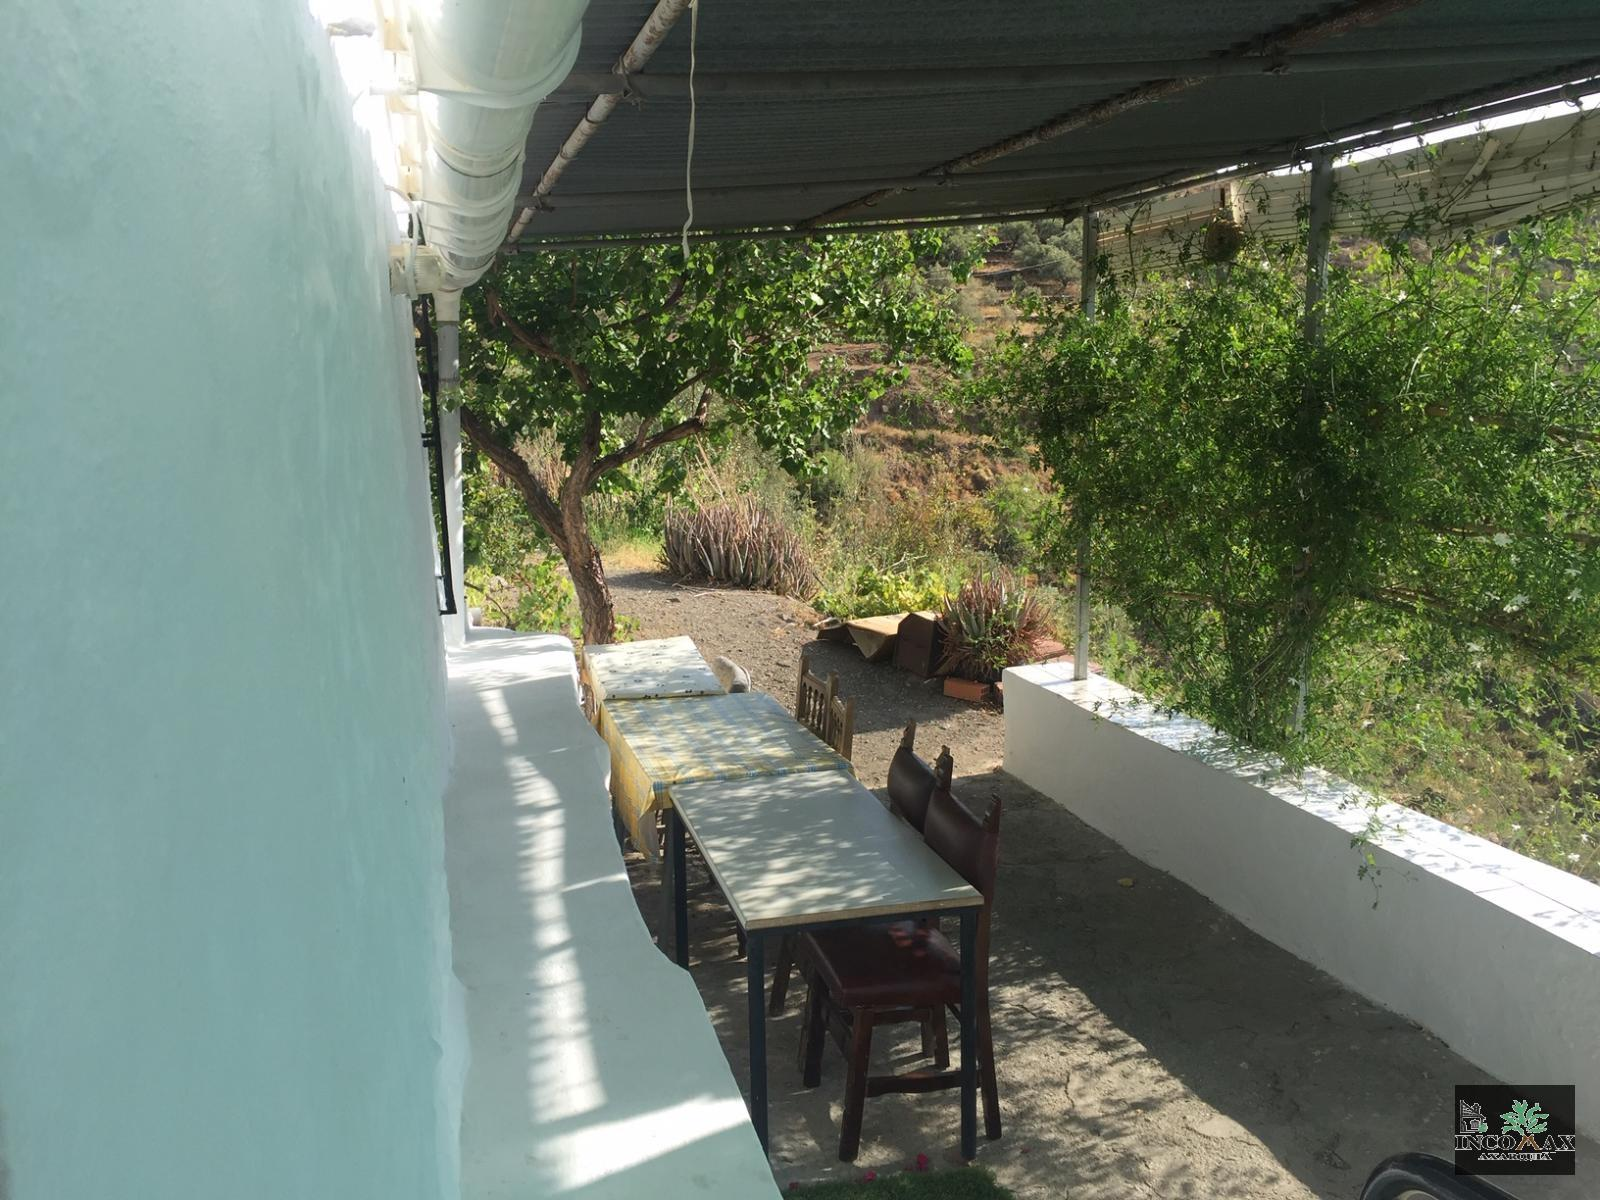 Country house for sale in Algarrobo, 96.000 € (Ref.: A-412)